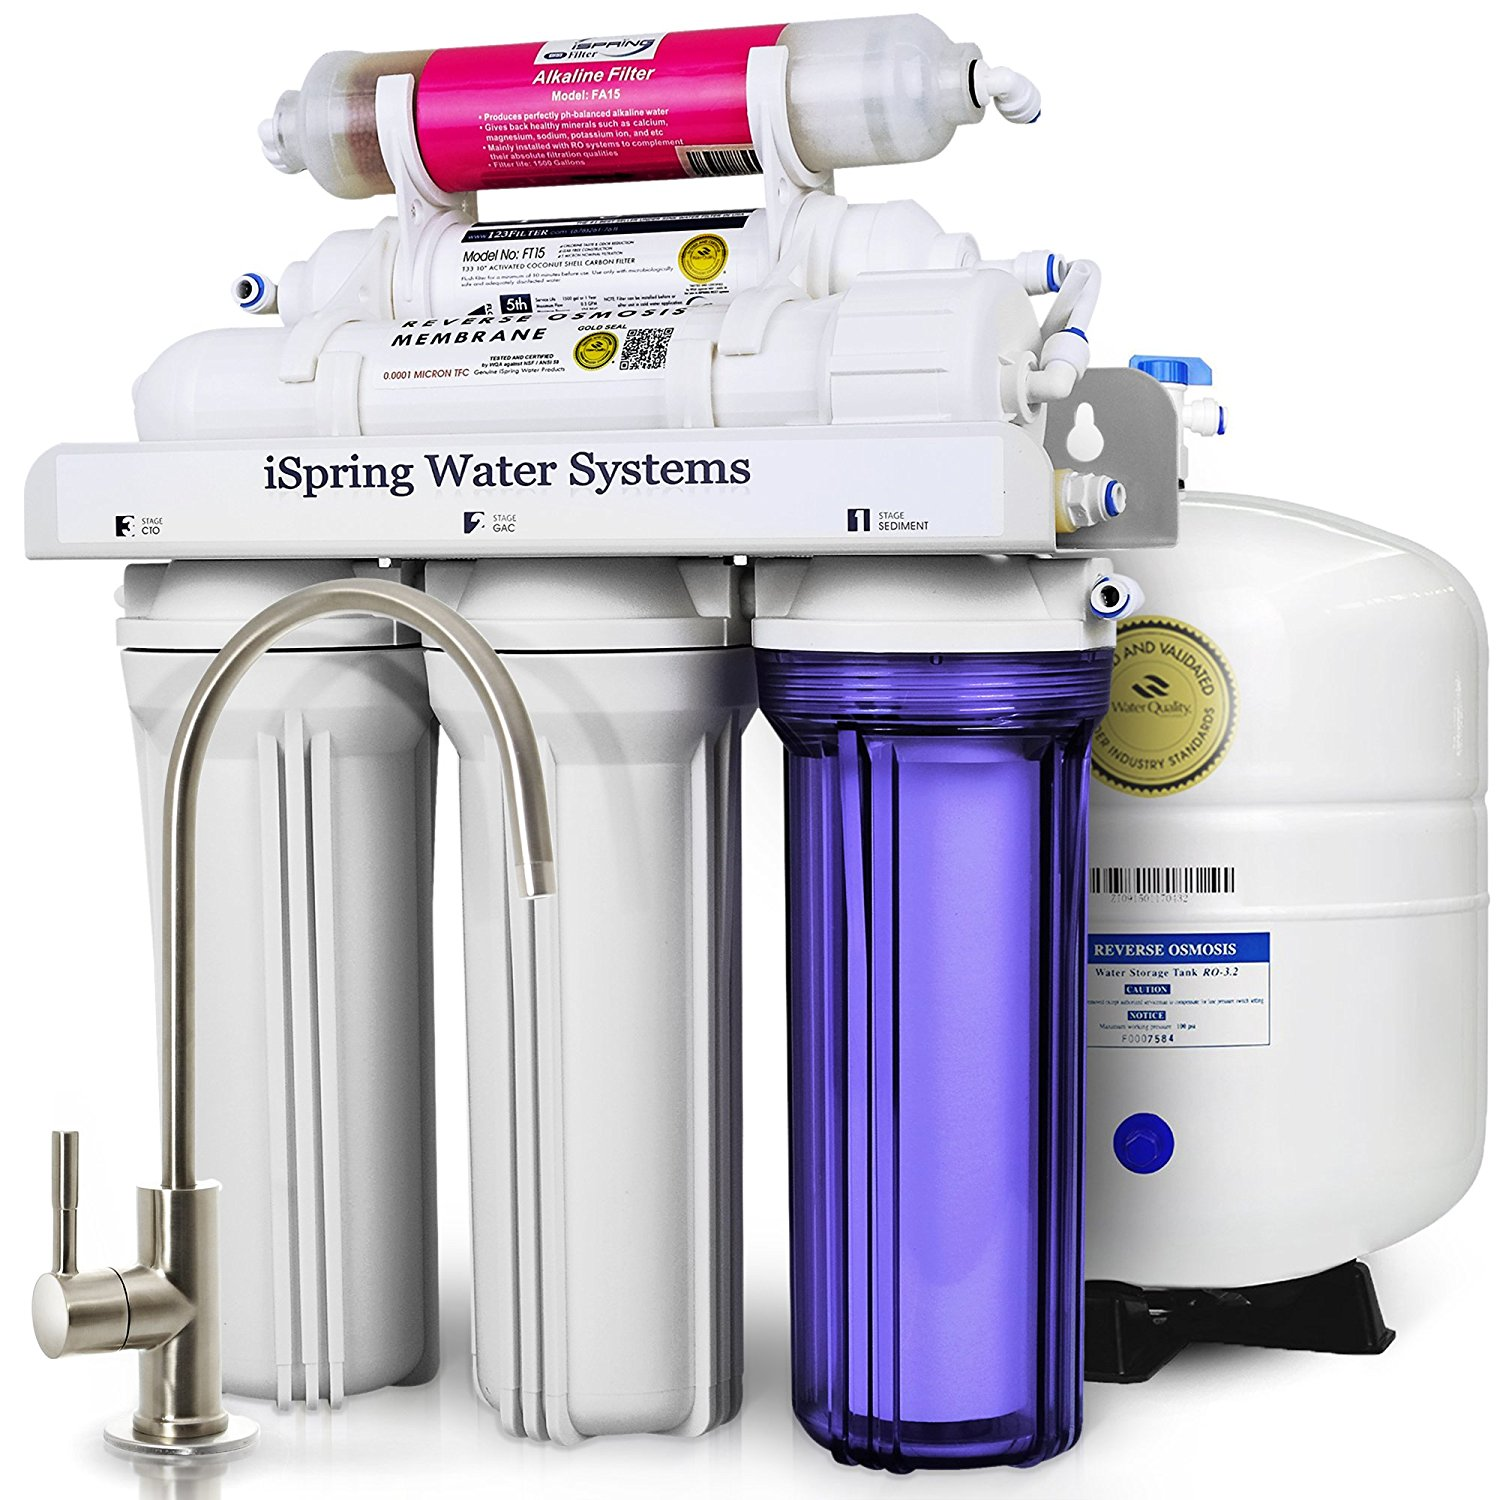 5 Benefits of Reverse Osmosis Water